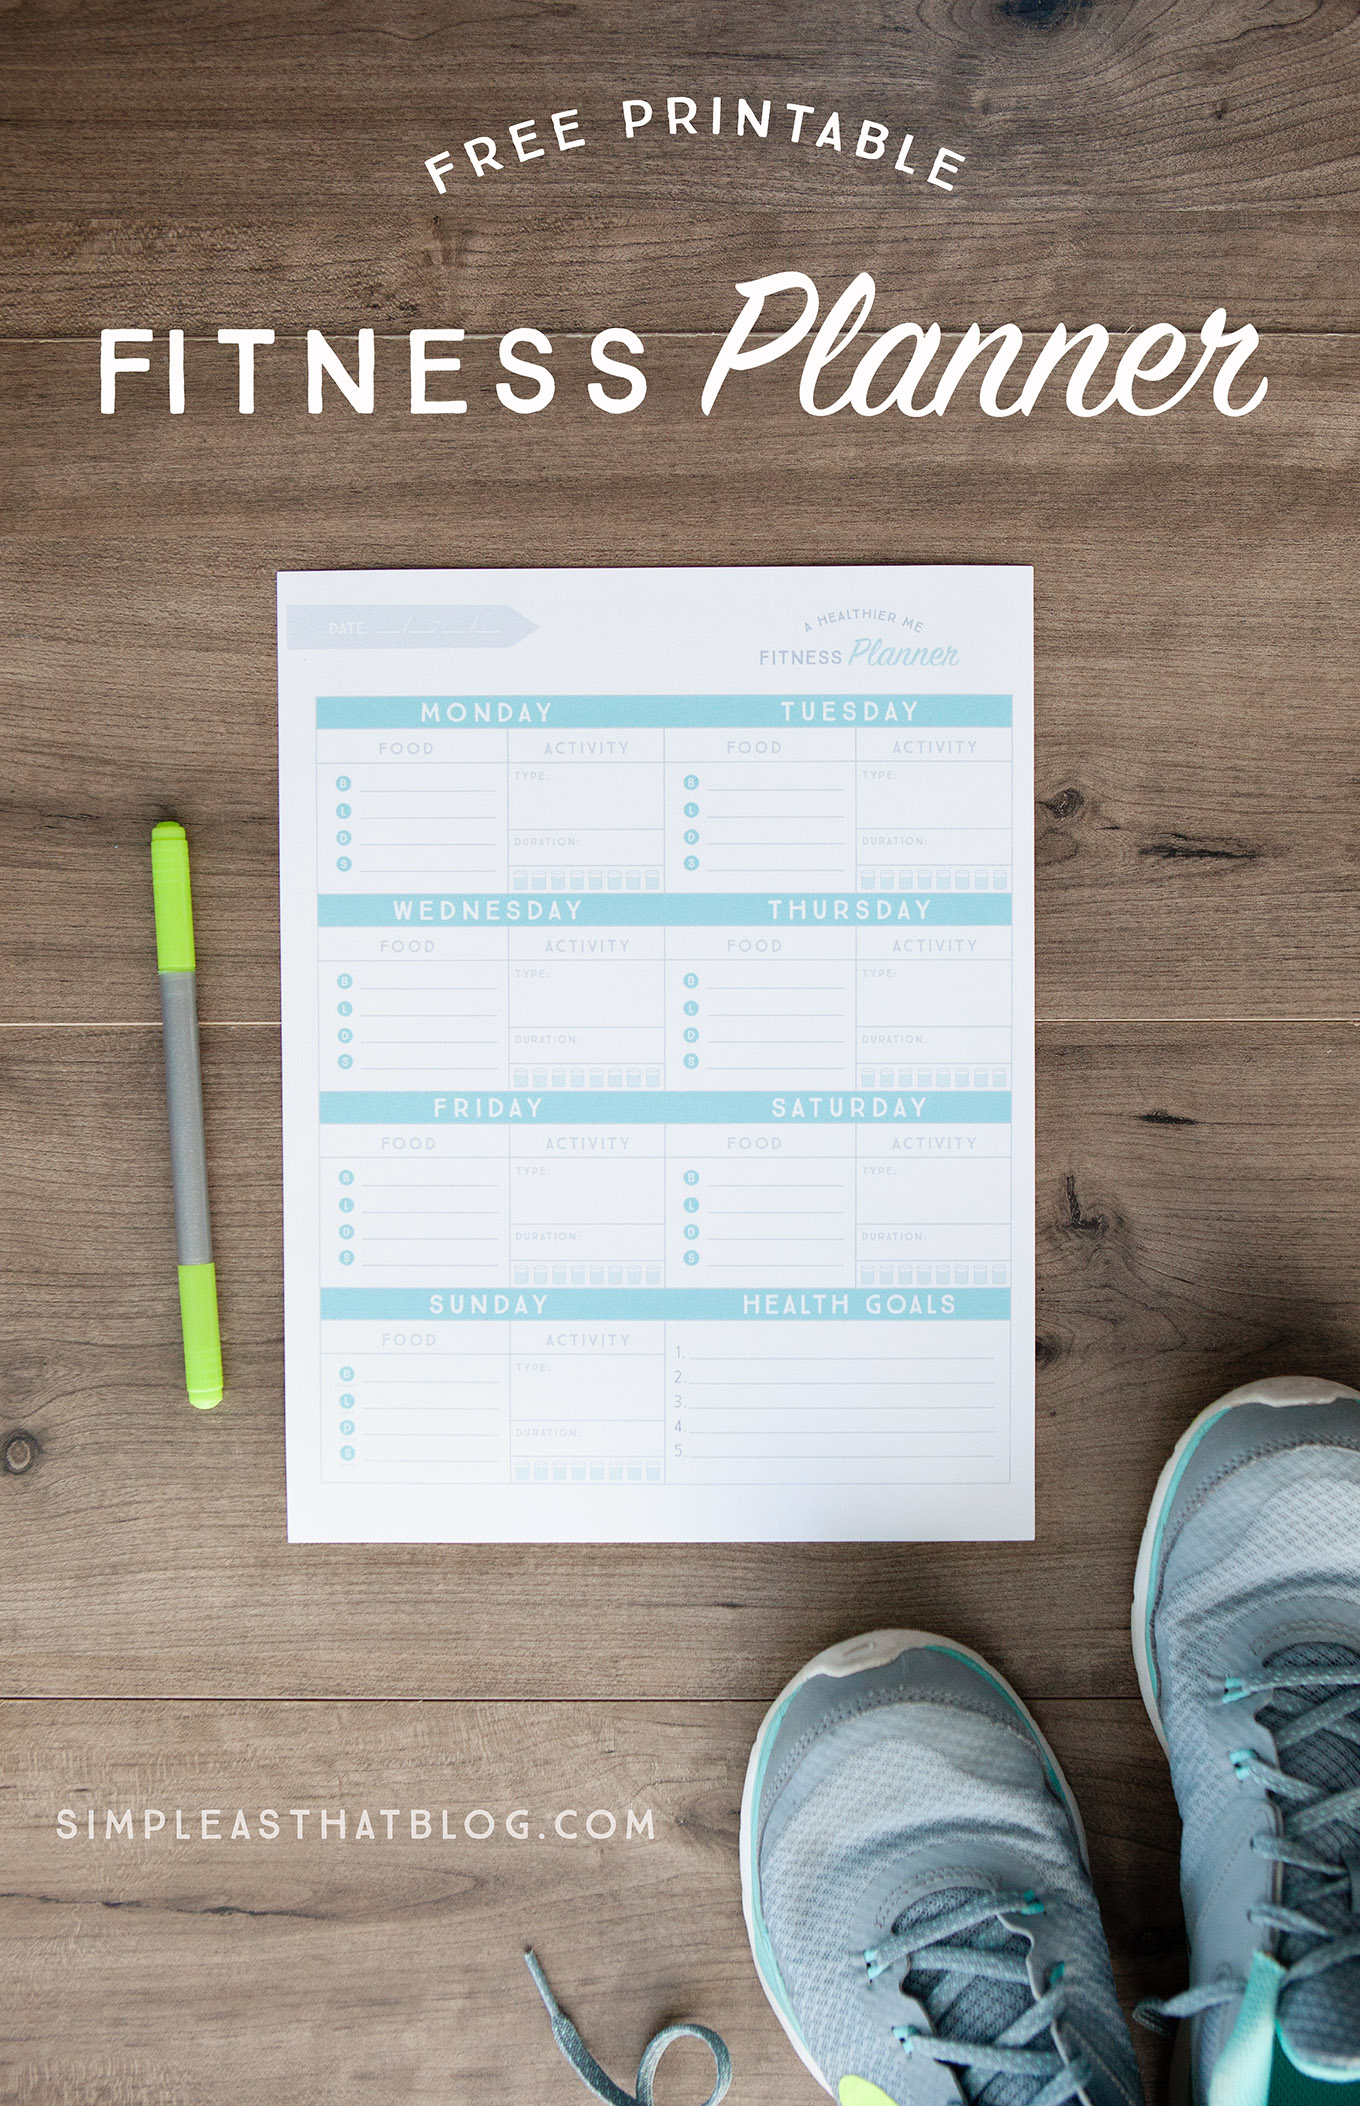 Free Printable Fitness Planner - Free Printable Fitness Planner